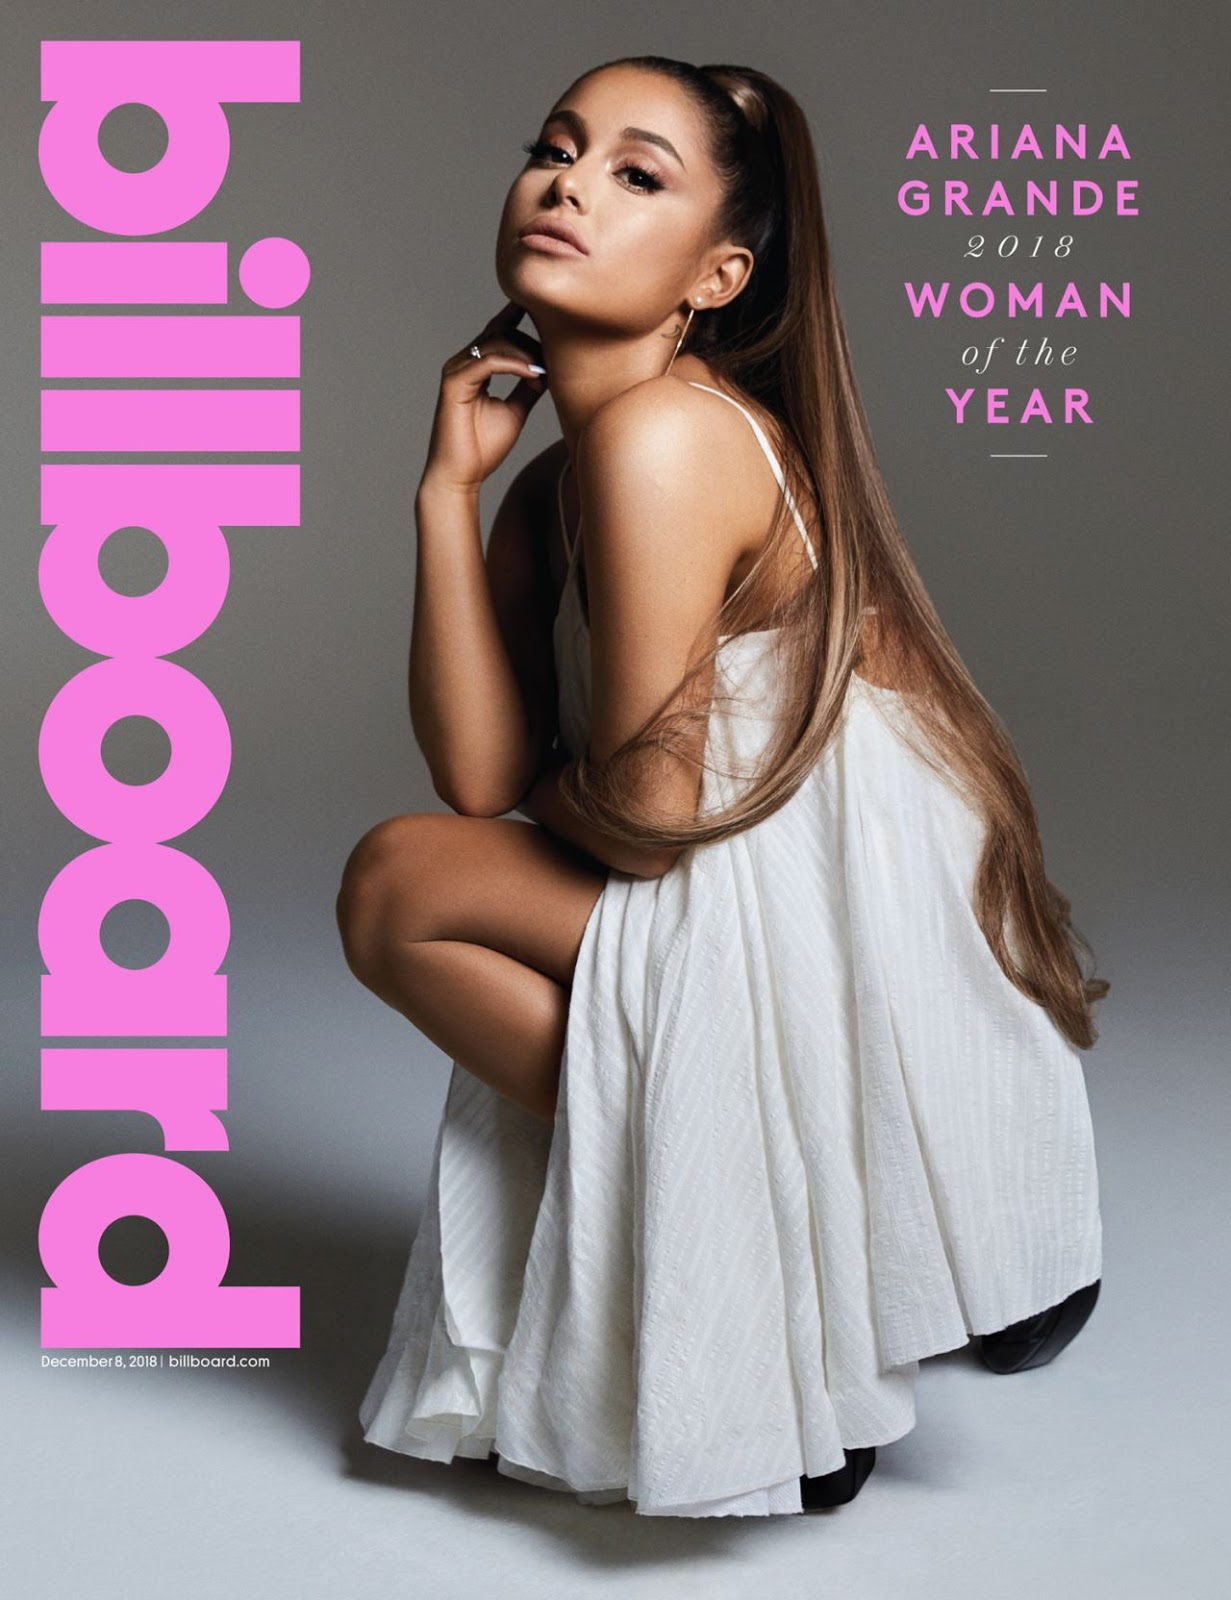 Ariana Grande is named Billboard Woman of the Year 2018